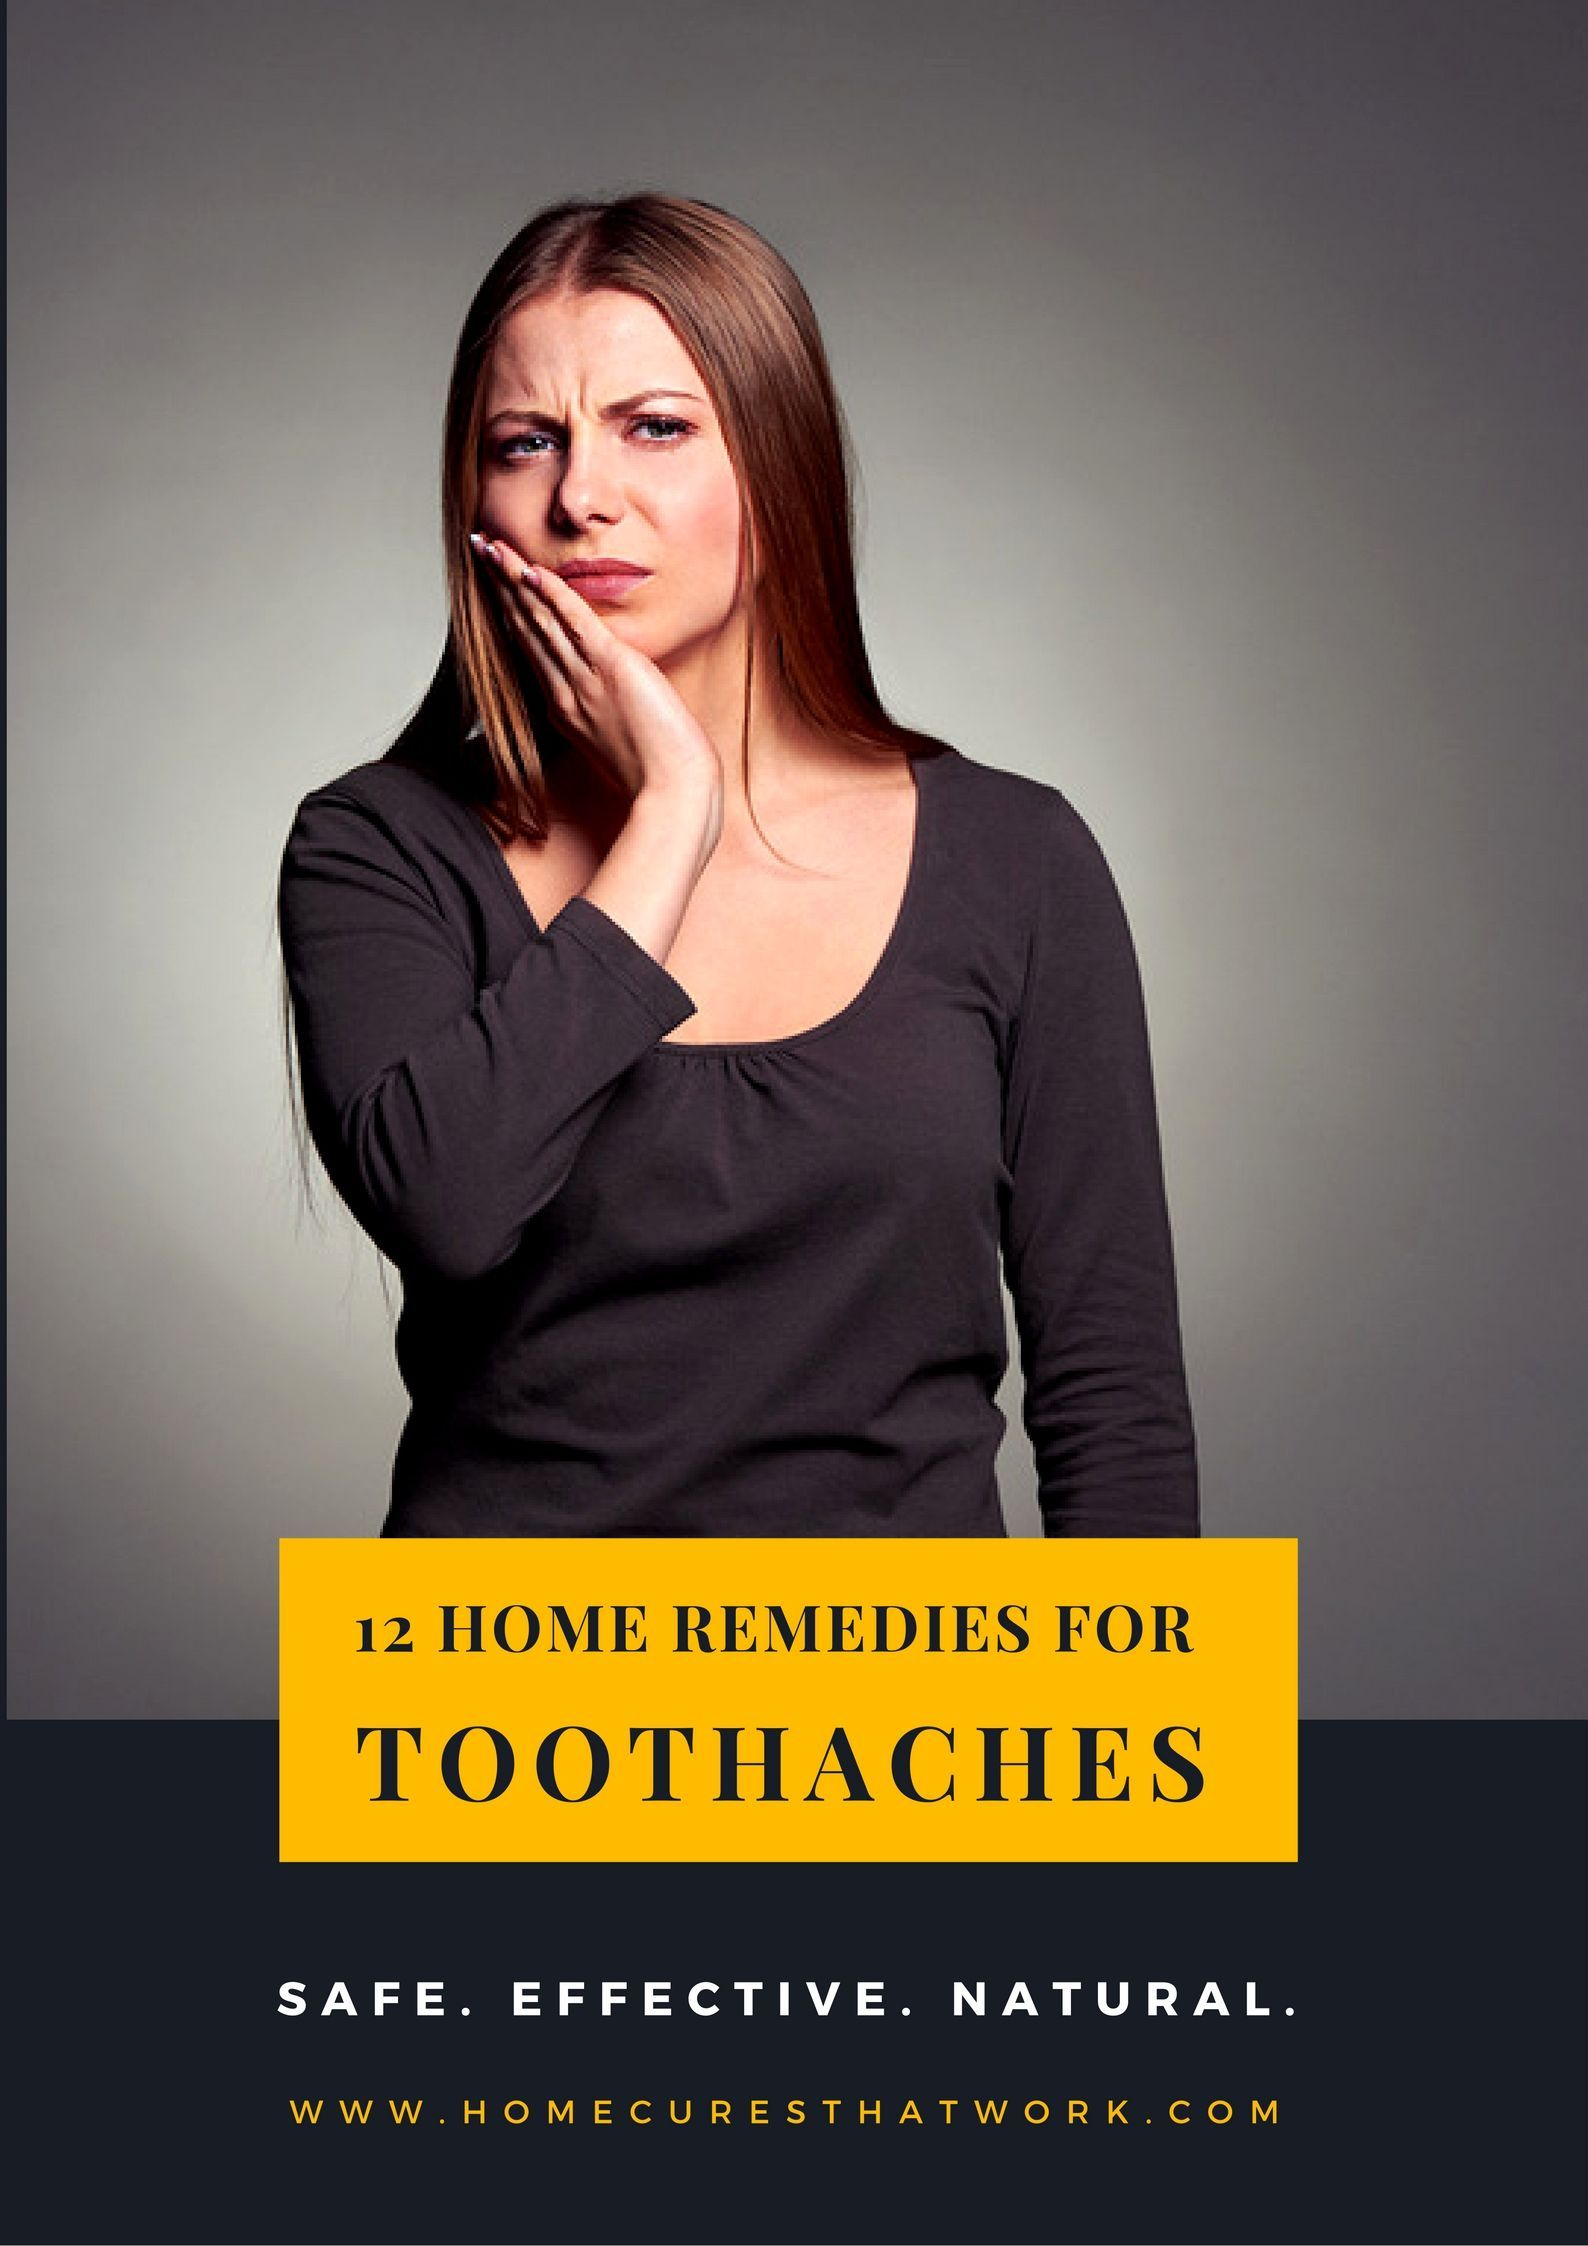 Toothaches are also at the top of the list for serious pain